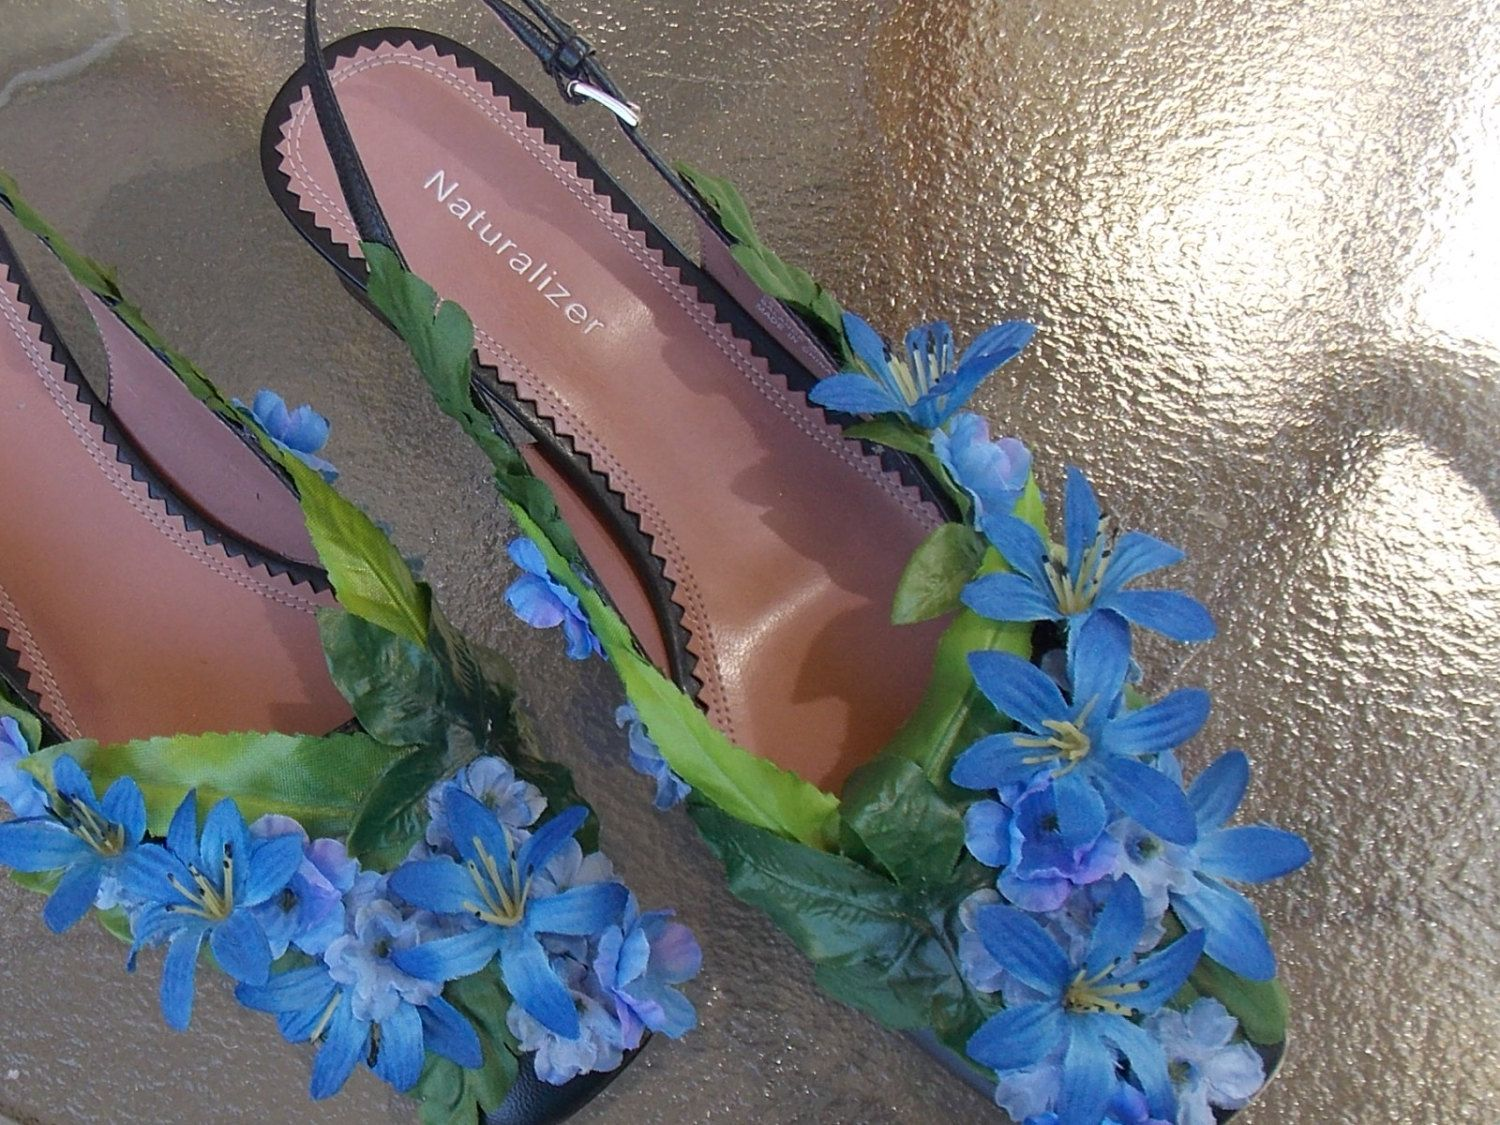 leafy green and blue flower fairy shoes adult fairy costume cosplay shoes wedding - Green Fairy Halloween Costume